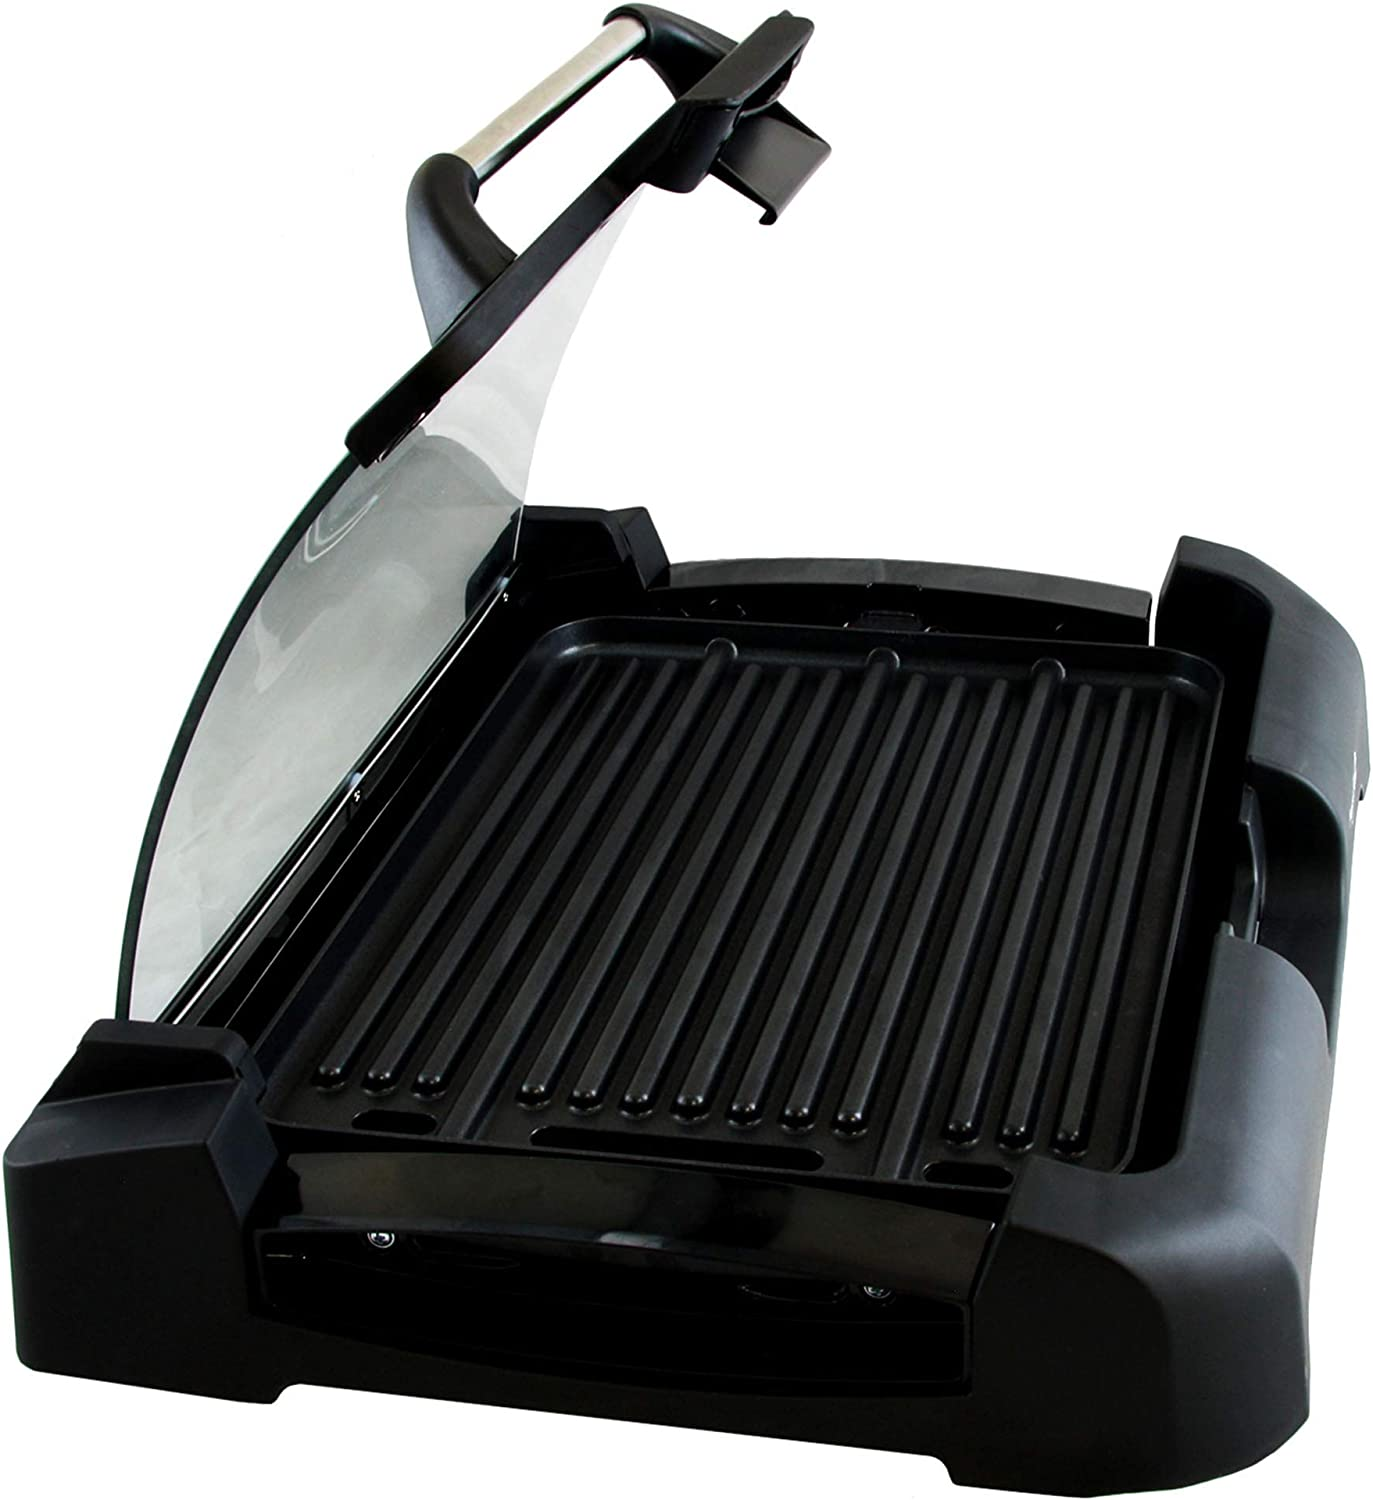 MegaChef Heavy Gauge Aluminum Reversible Indoor Grill and Griddle